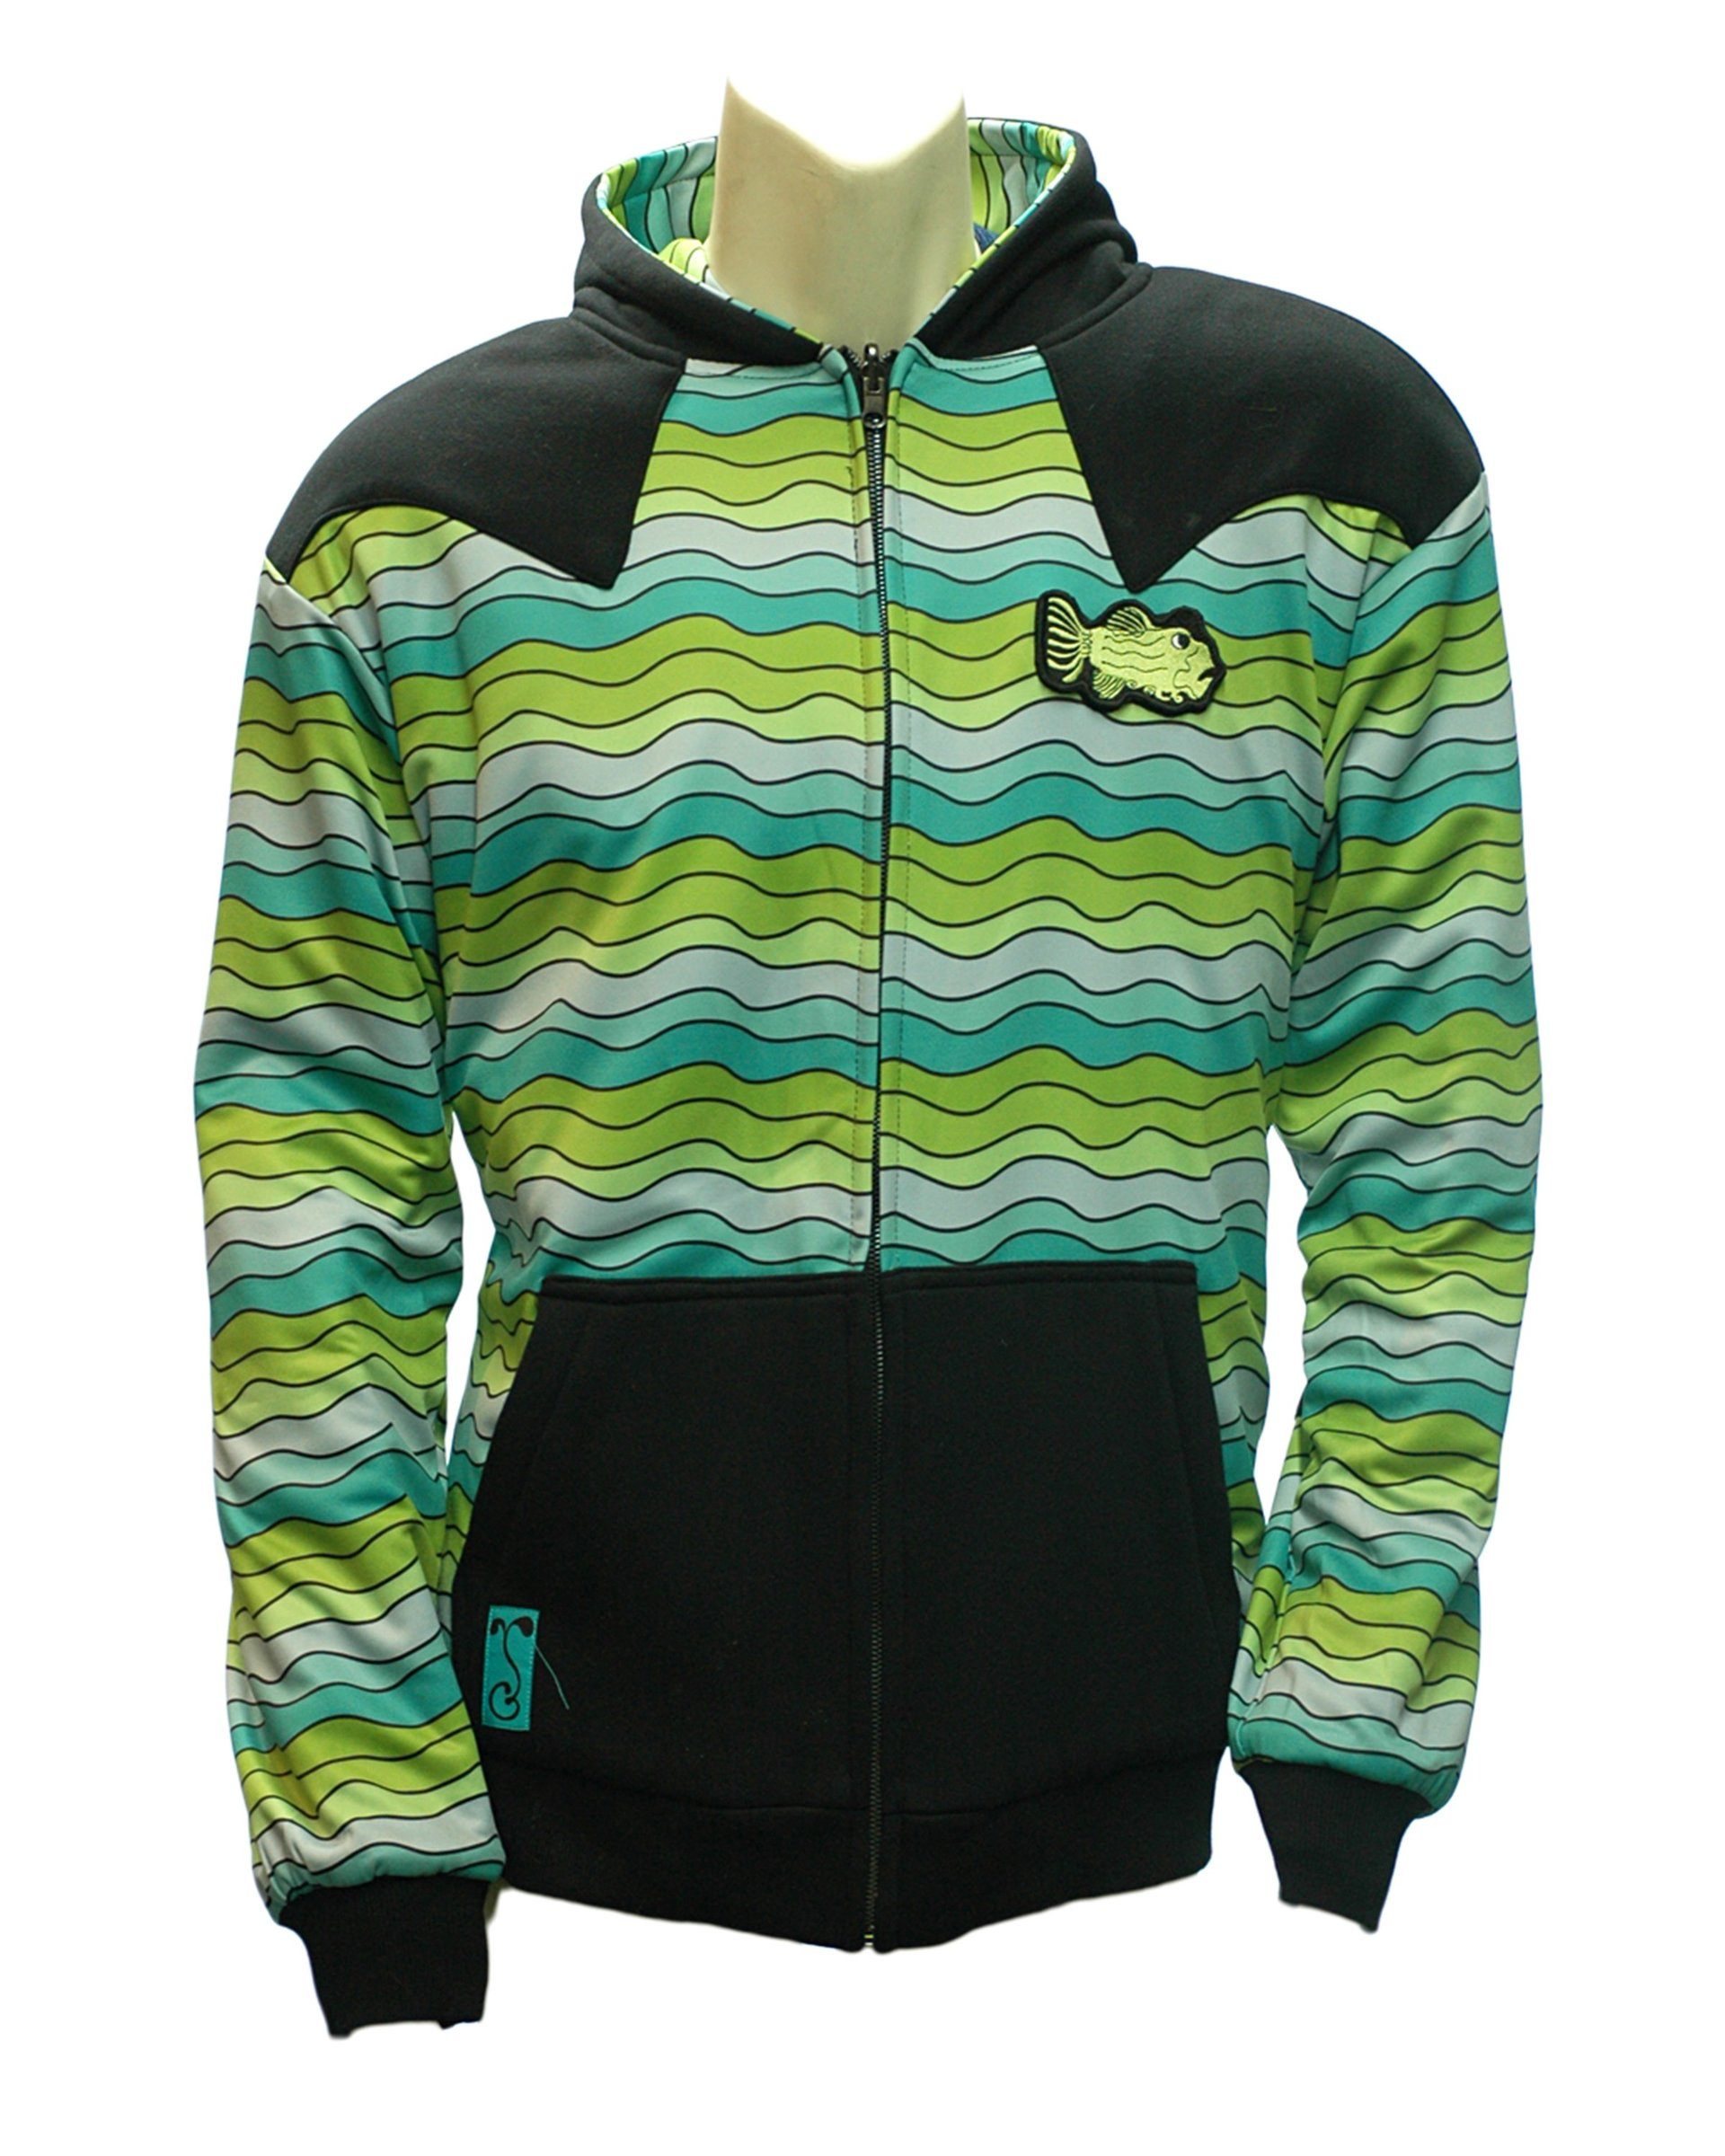 Reversible Jerry Garcia Removable Fish Waves Zip-up Hoodie (Inside-Front)